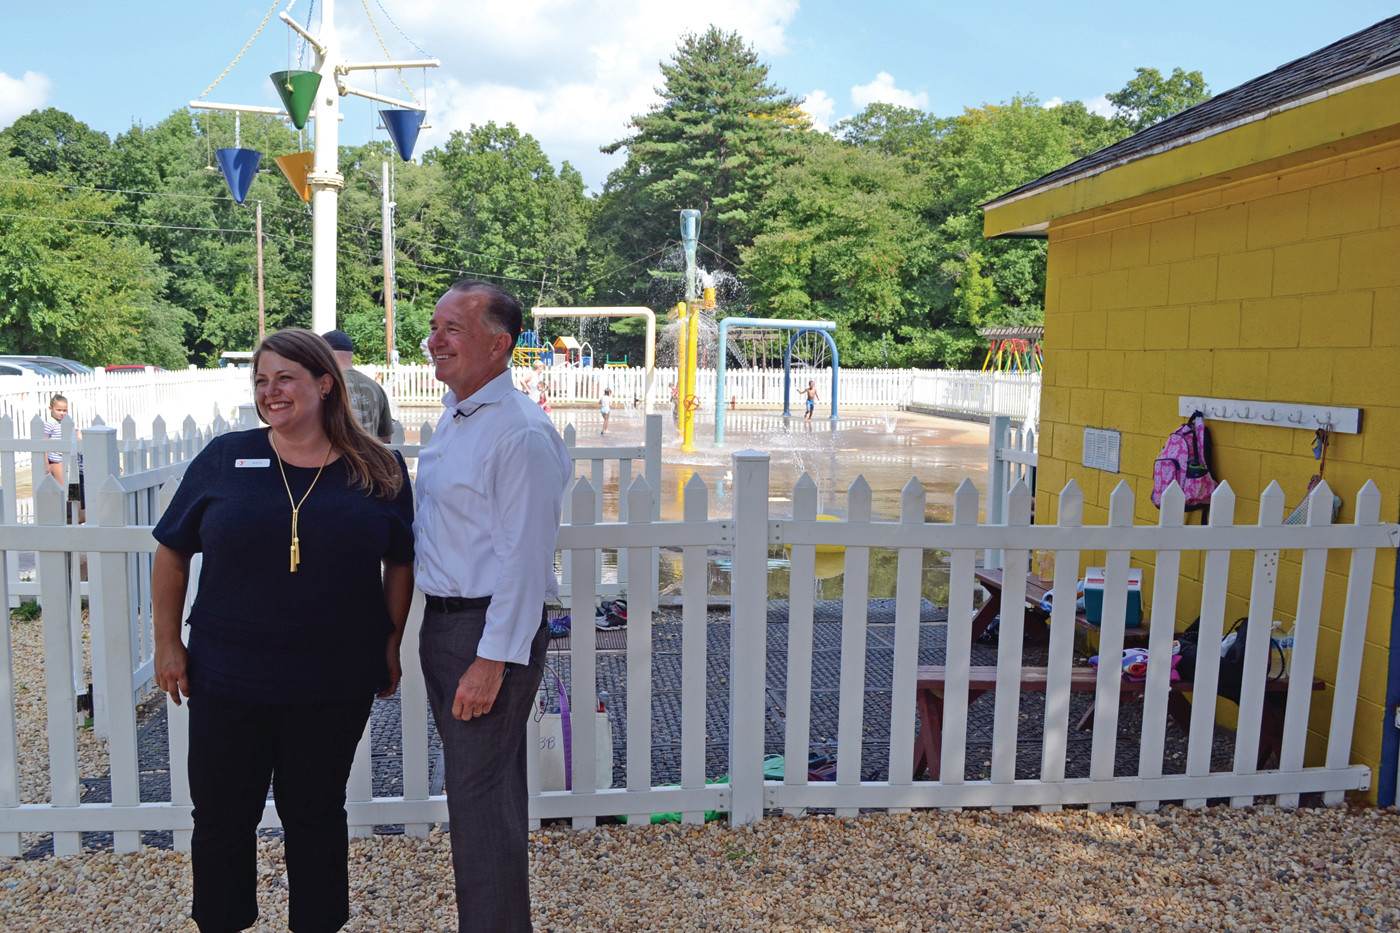 PARK PURVEYORS: Kate Messier, vice president of program quality and Steven O'Donnell, CEO of the Greater Providence YMCA, spoke about why they opened their spray park to the general public last week during a scorching day in the state.